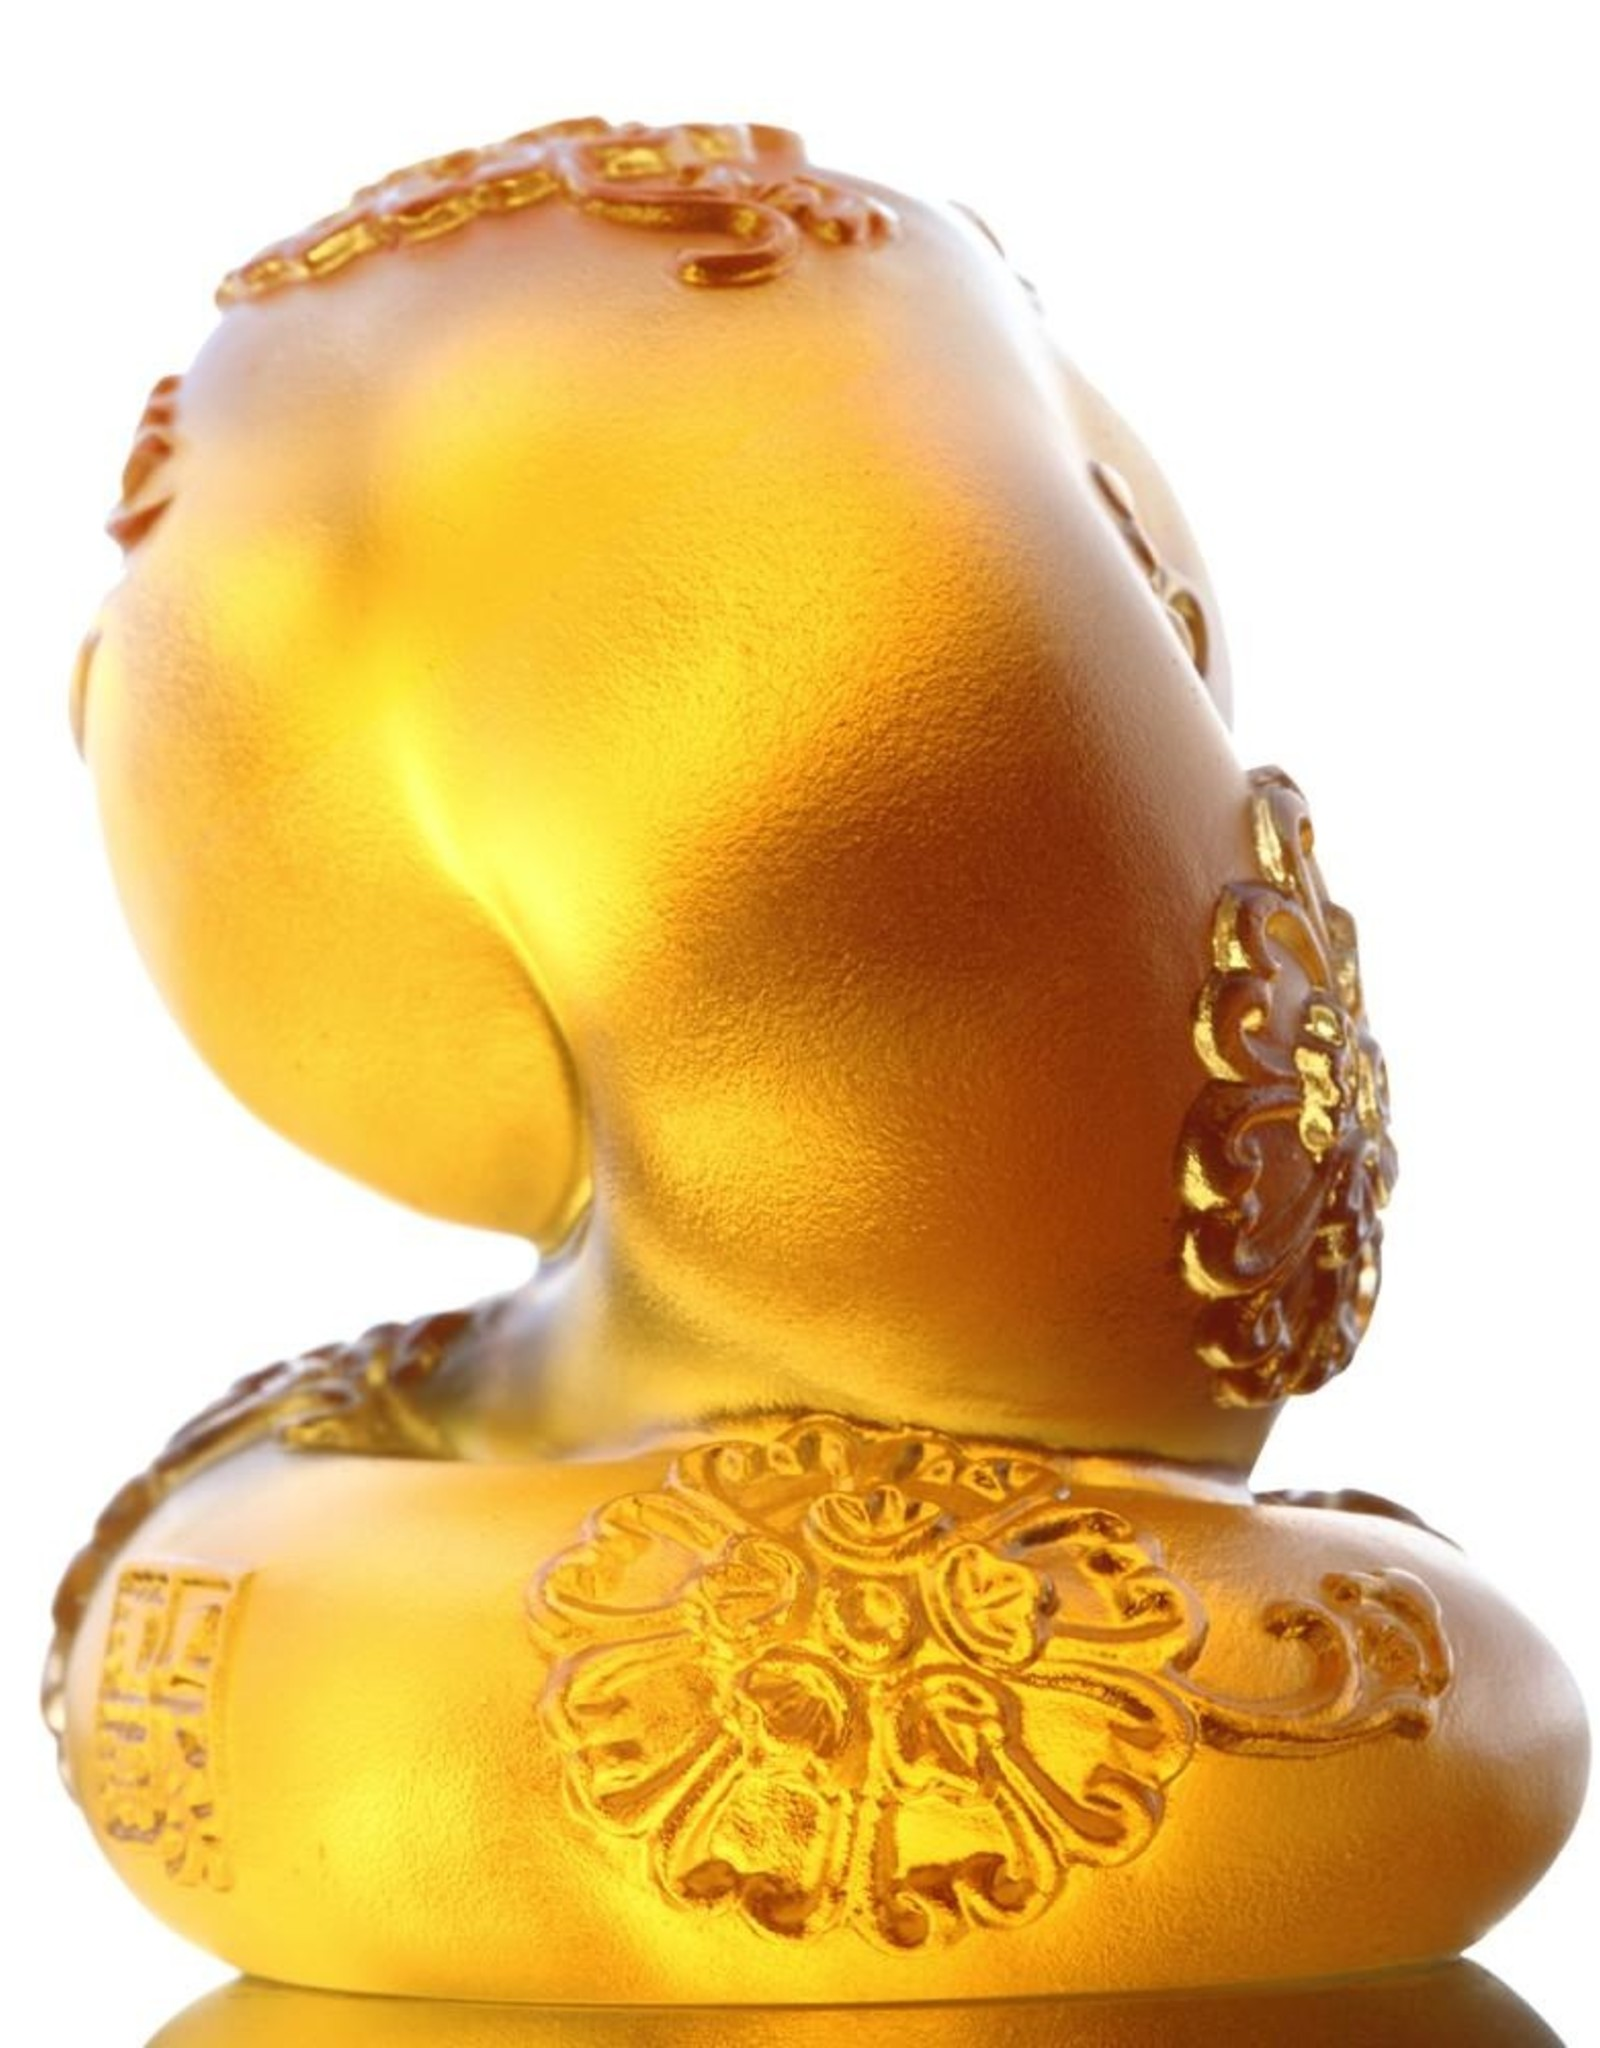 """LIULI Crystal Art Crystal Year of the Snake """"Serpentine"""" Chinese Zodiac Figurine in Amber (Limited Edition)"""